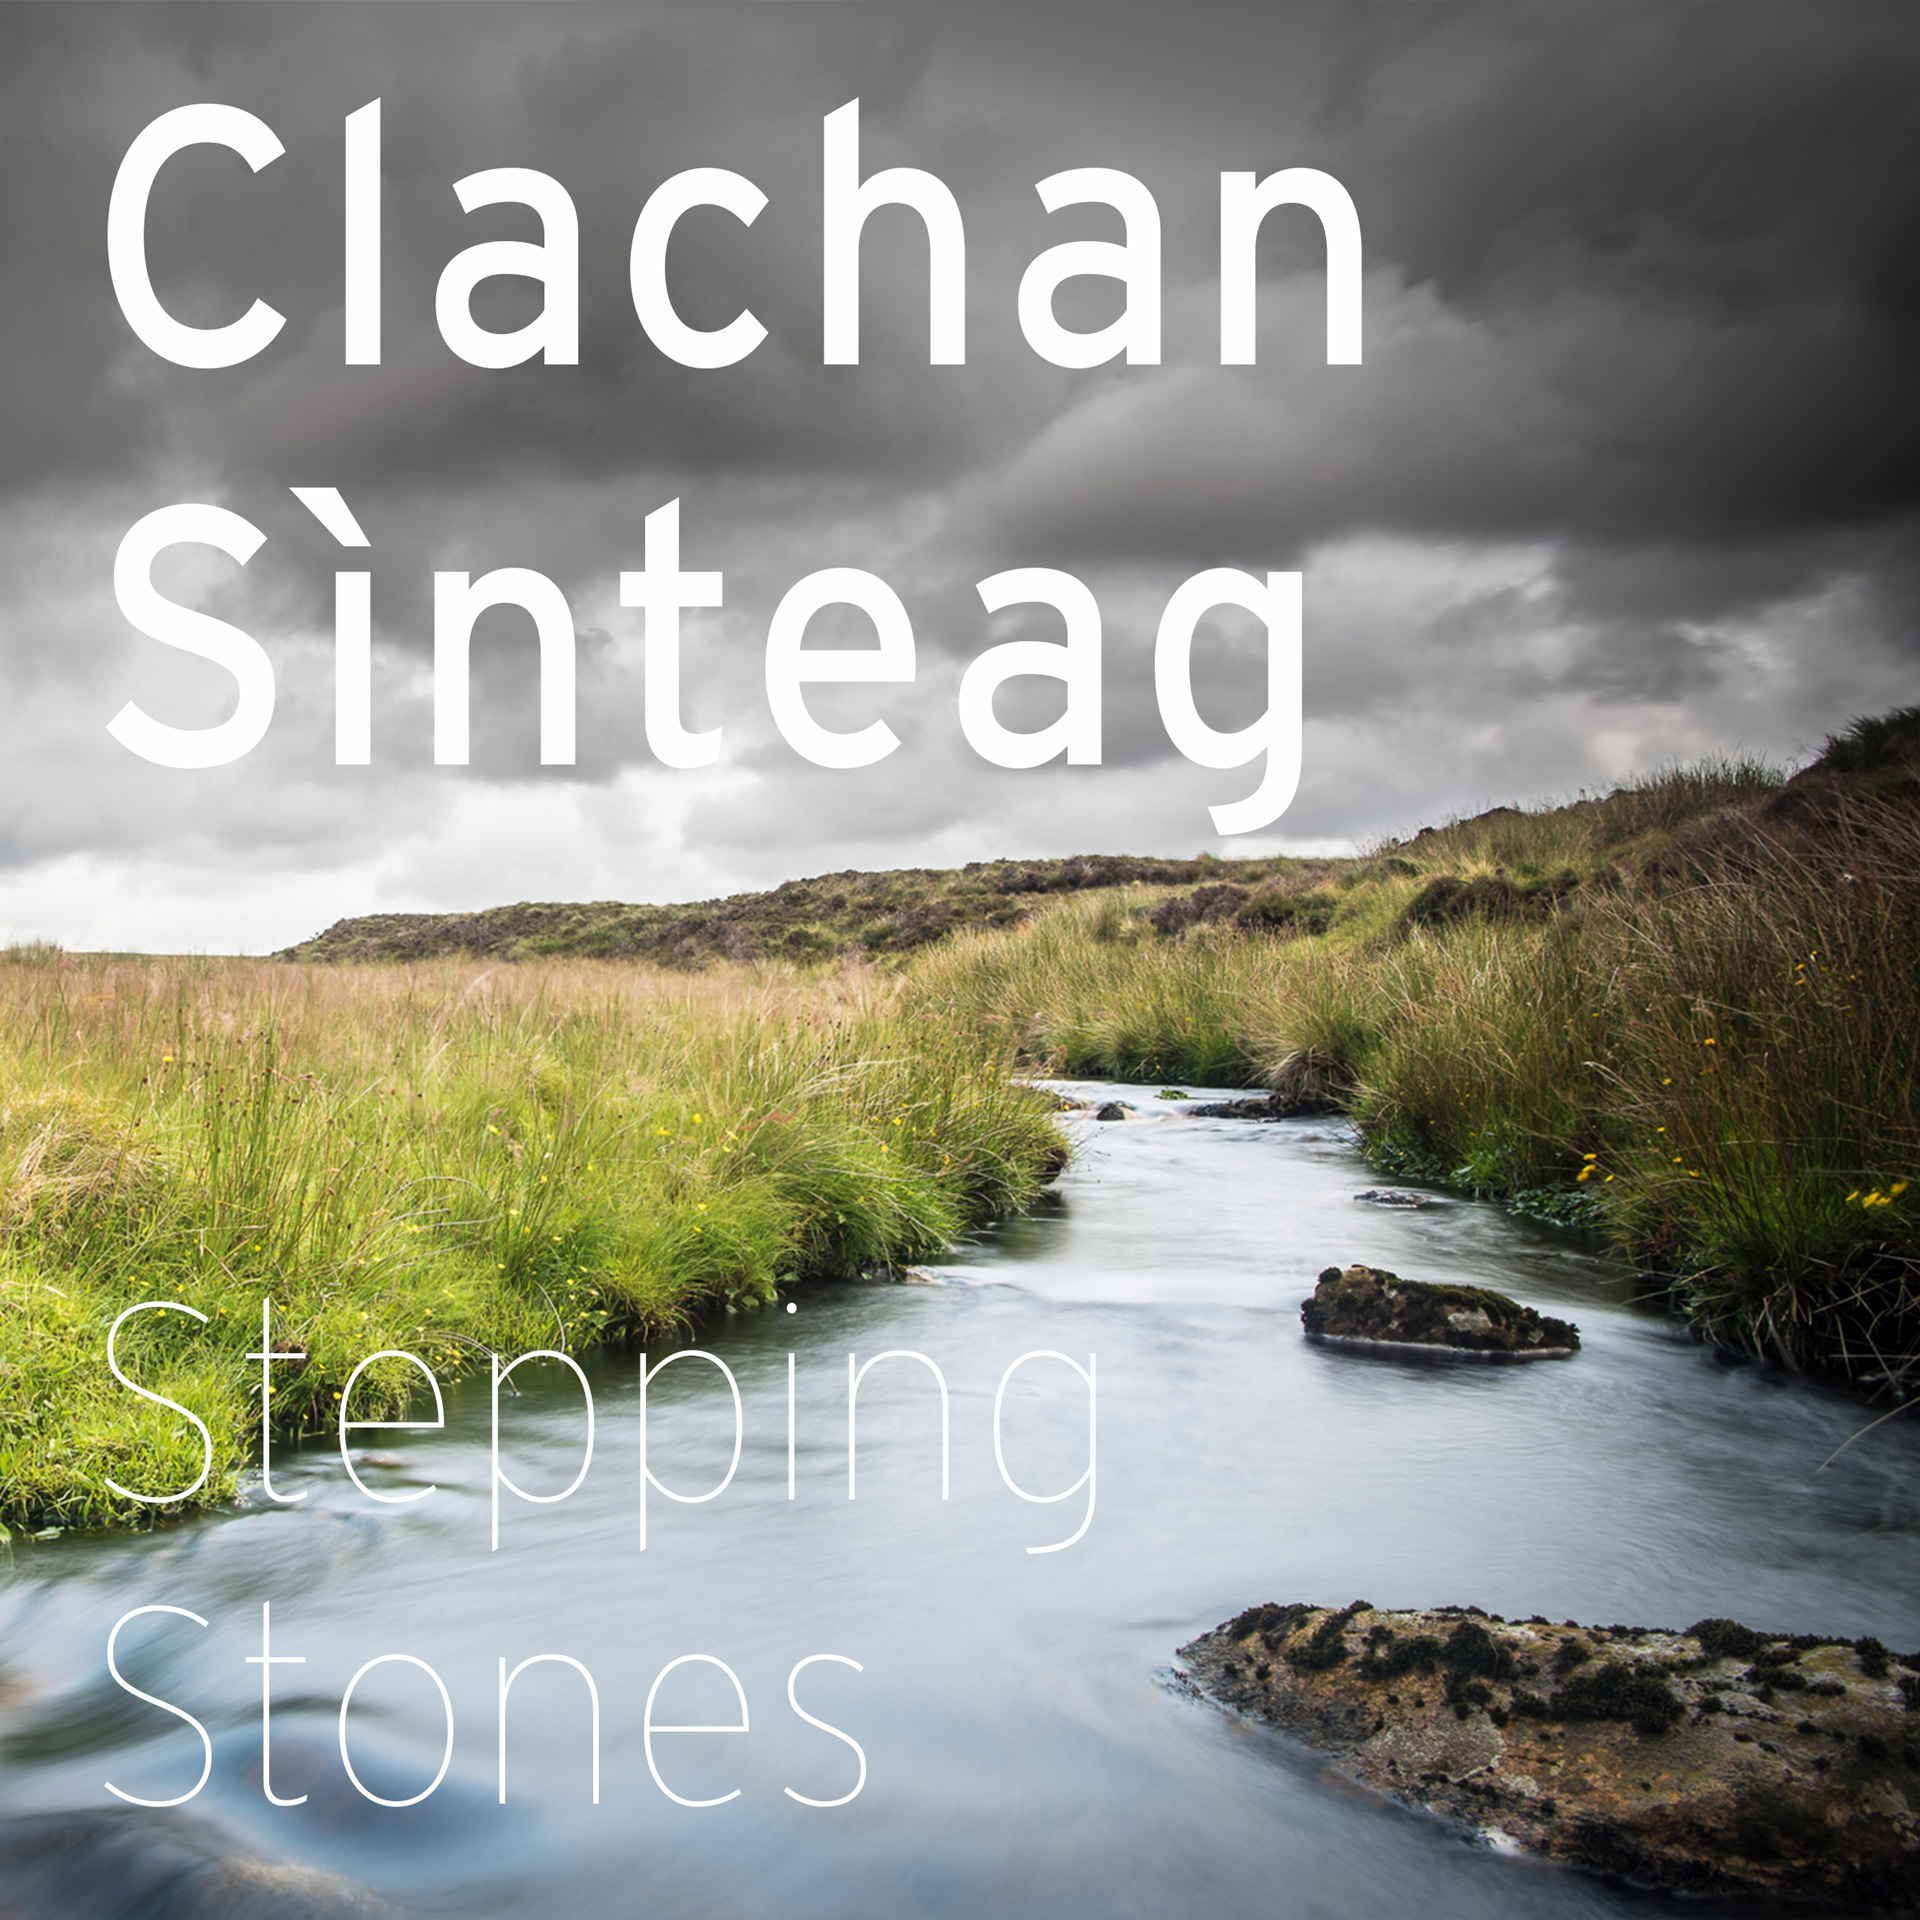 stepping stones over a river annotated